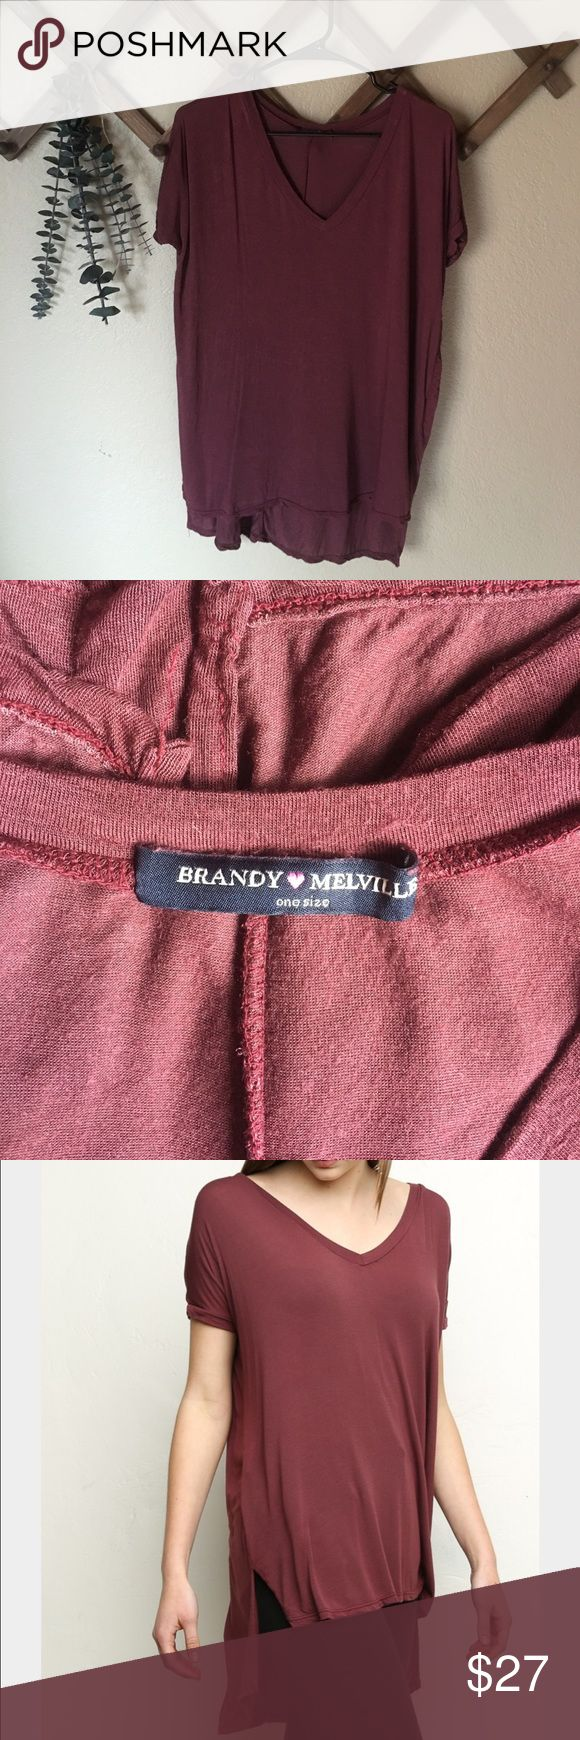 Brandy Melville Milan top V neck Milan top / great condition / one size / maroon / Brandy Melville Brandy Melville Tops Tunics